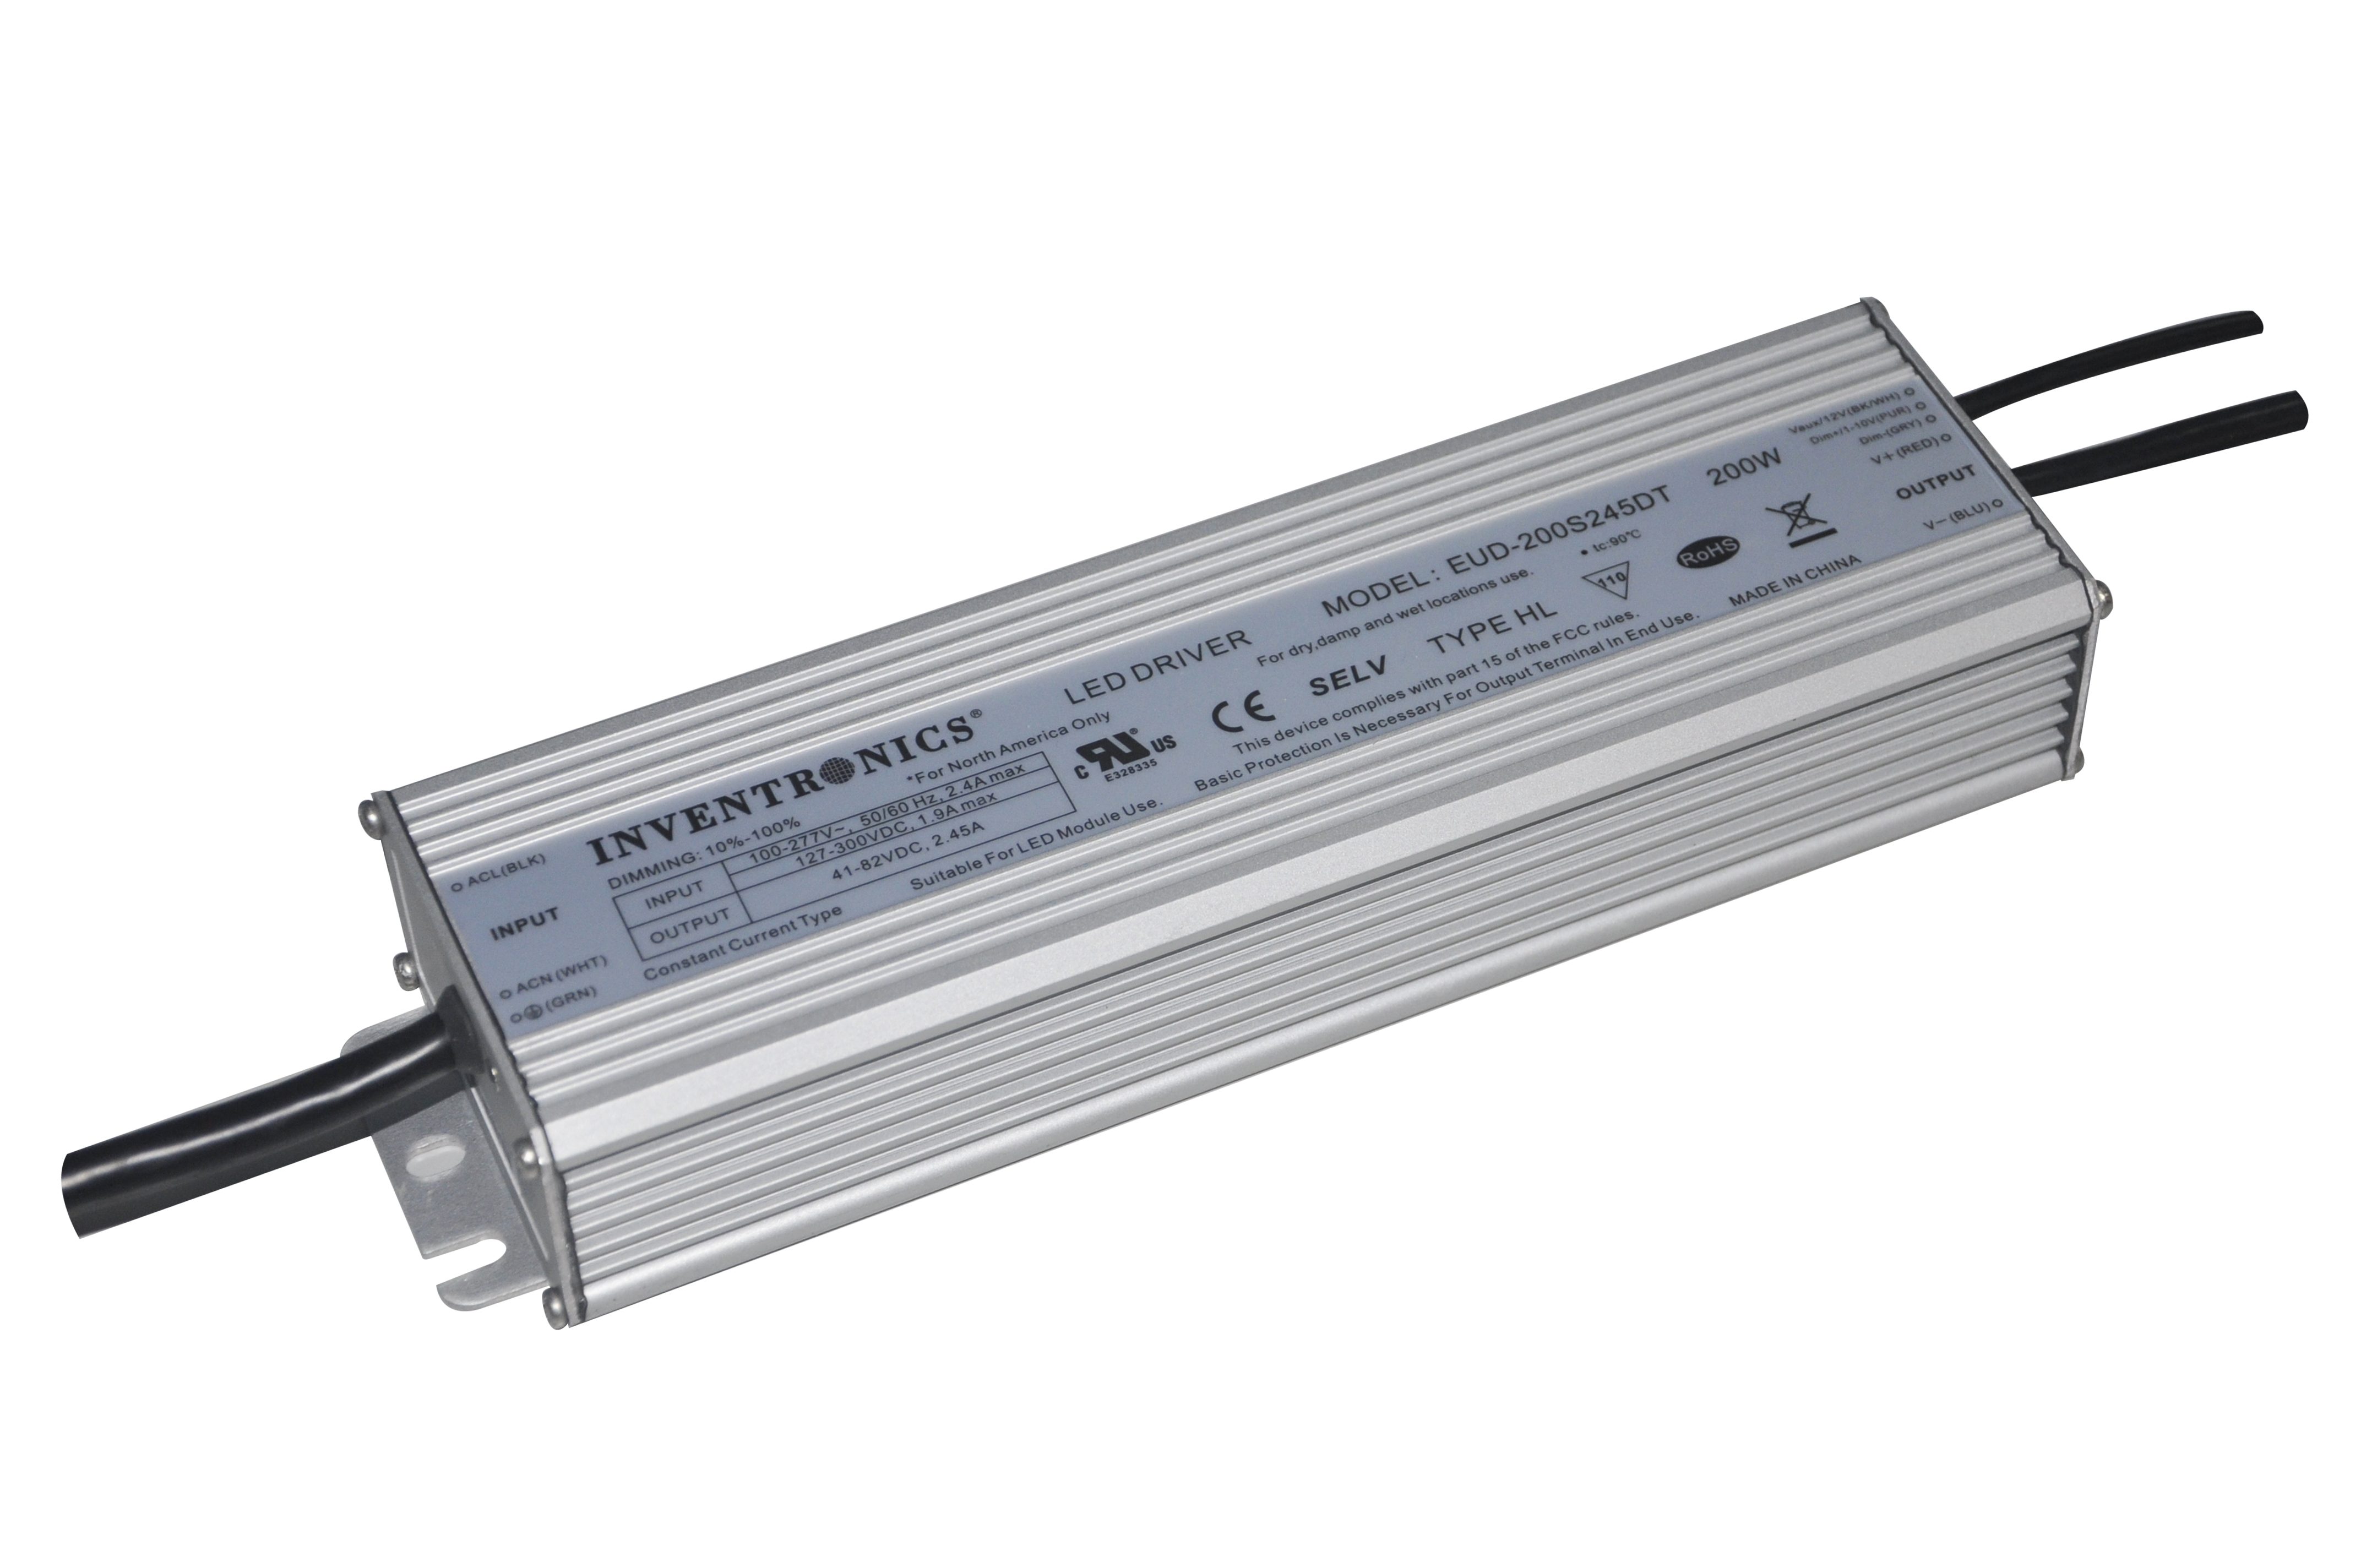 Alcom represents: Inventronics Programmable Outdoor LED Drivers with ...